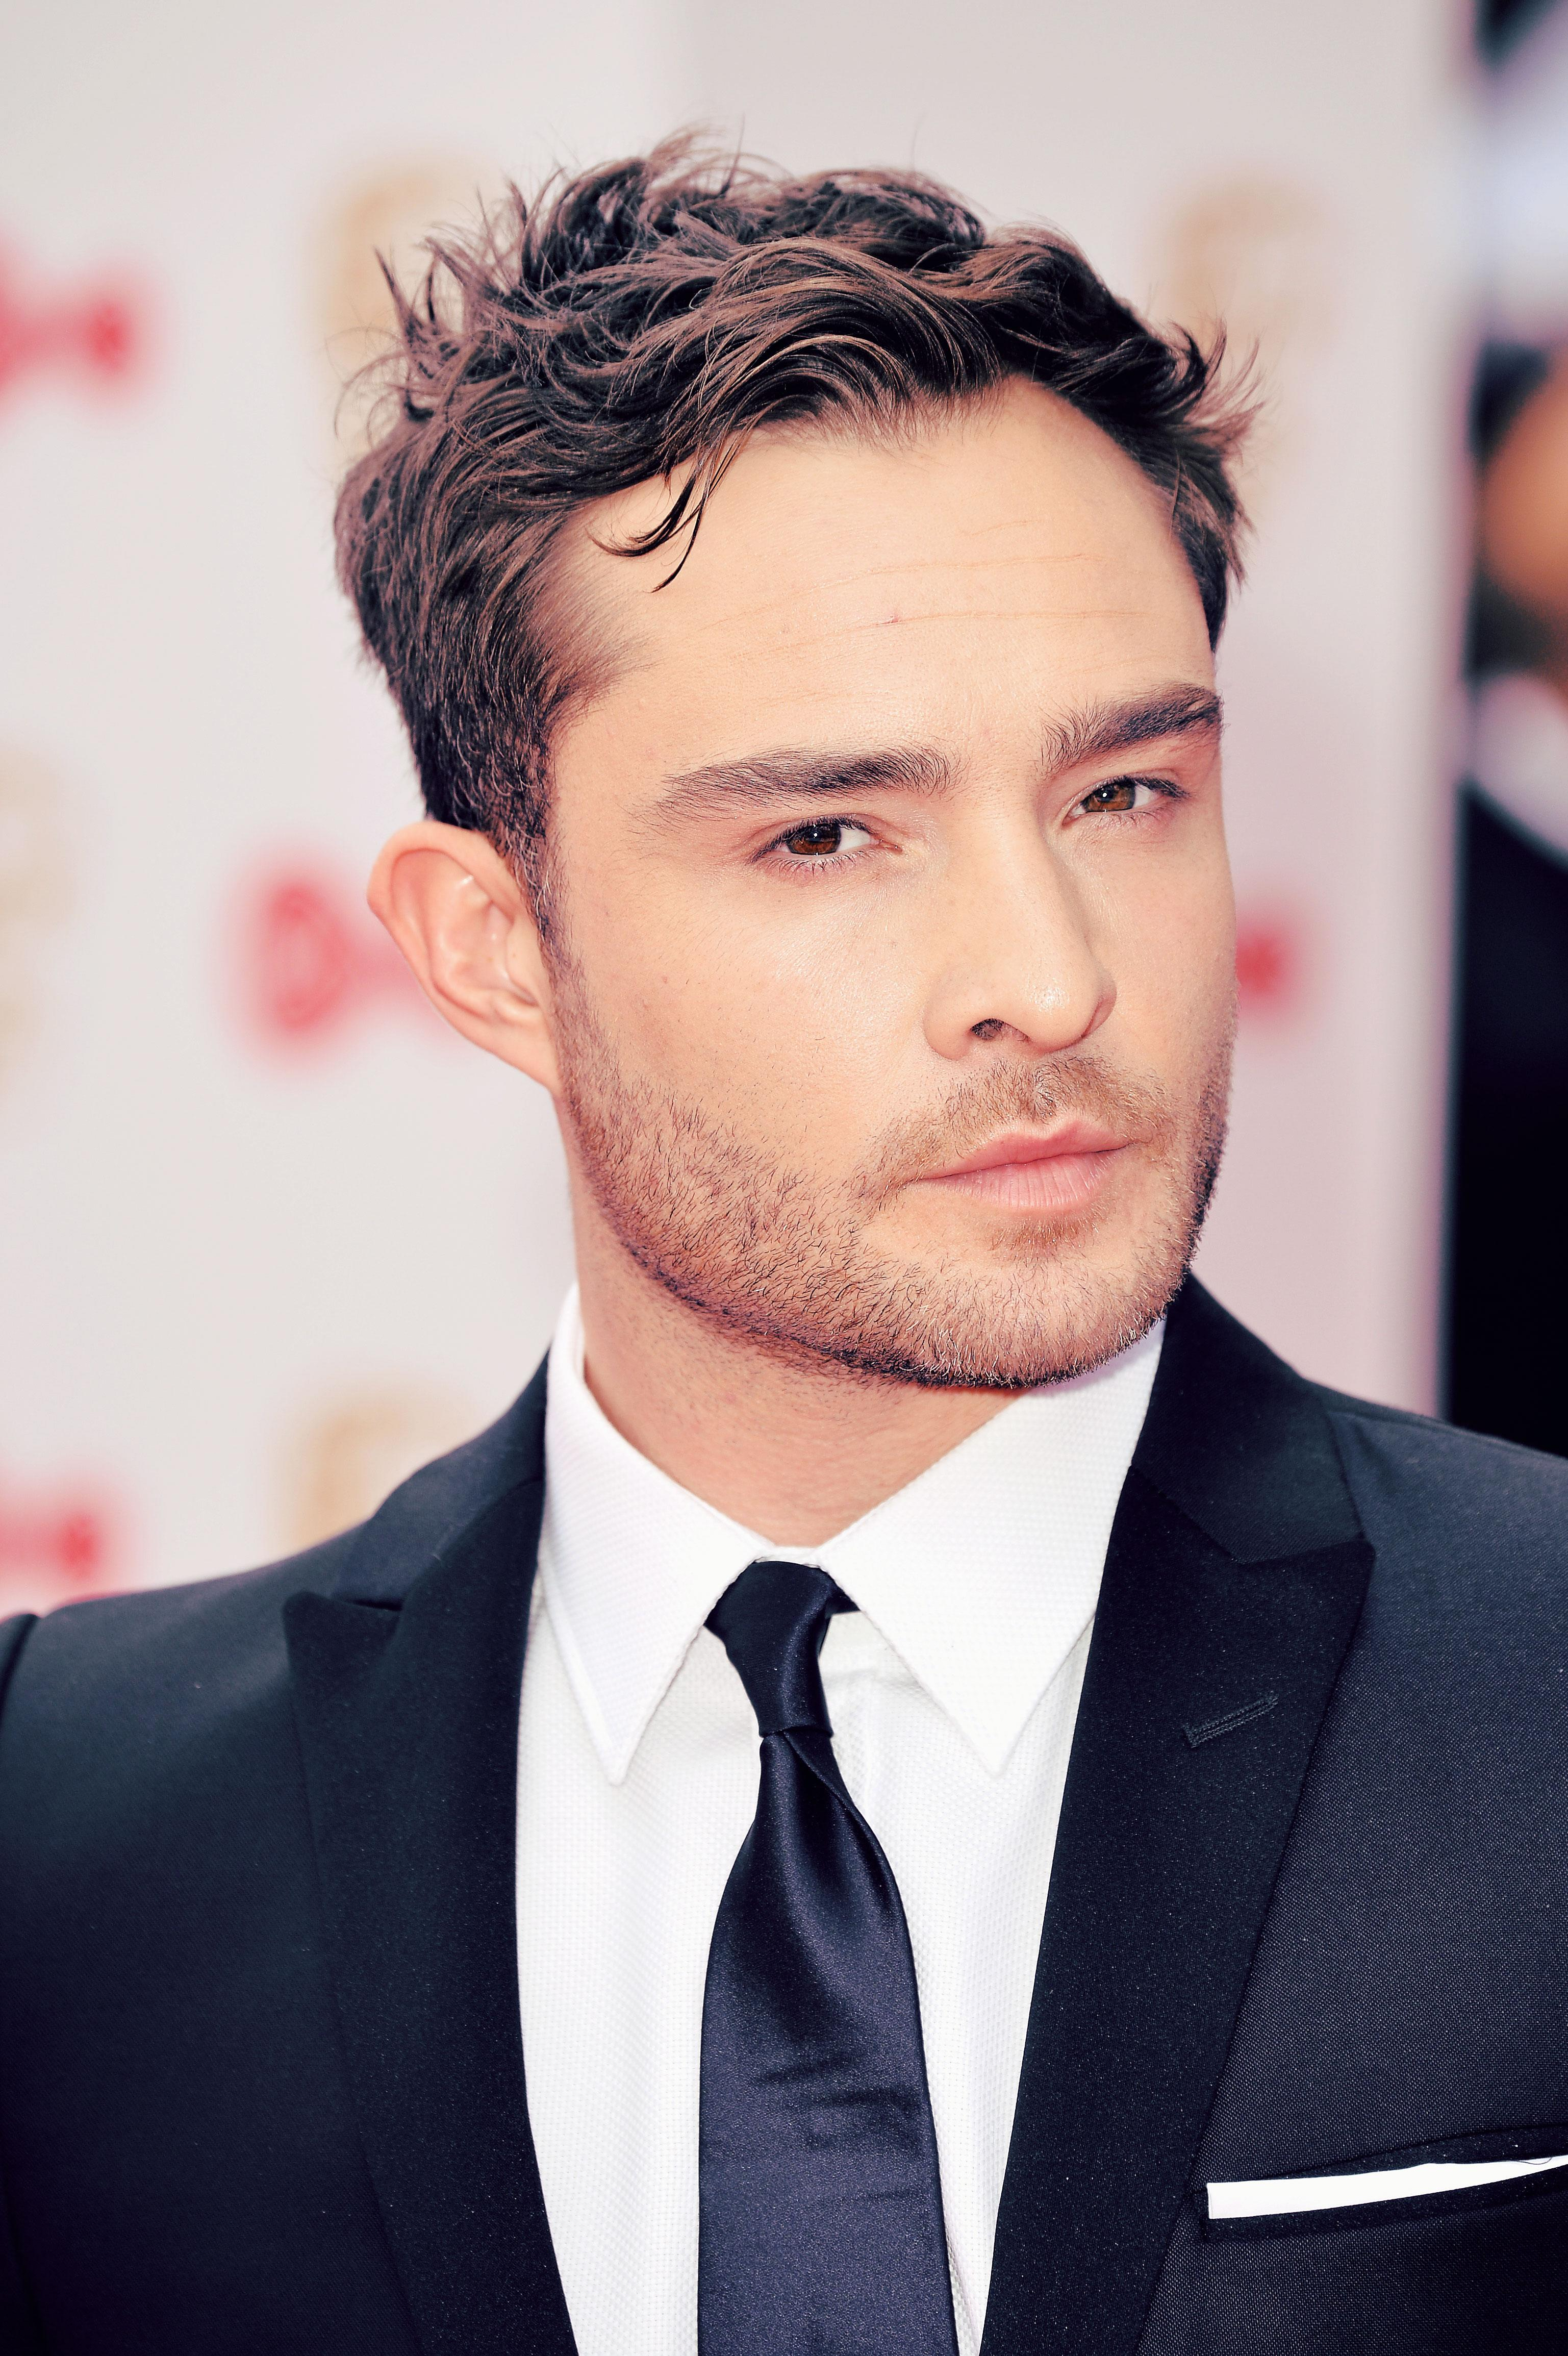 Gossip Girl Star Accused of Raping Actress Kristina Cohen Ed Westwick